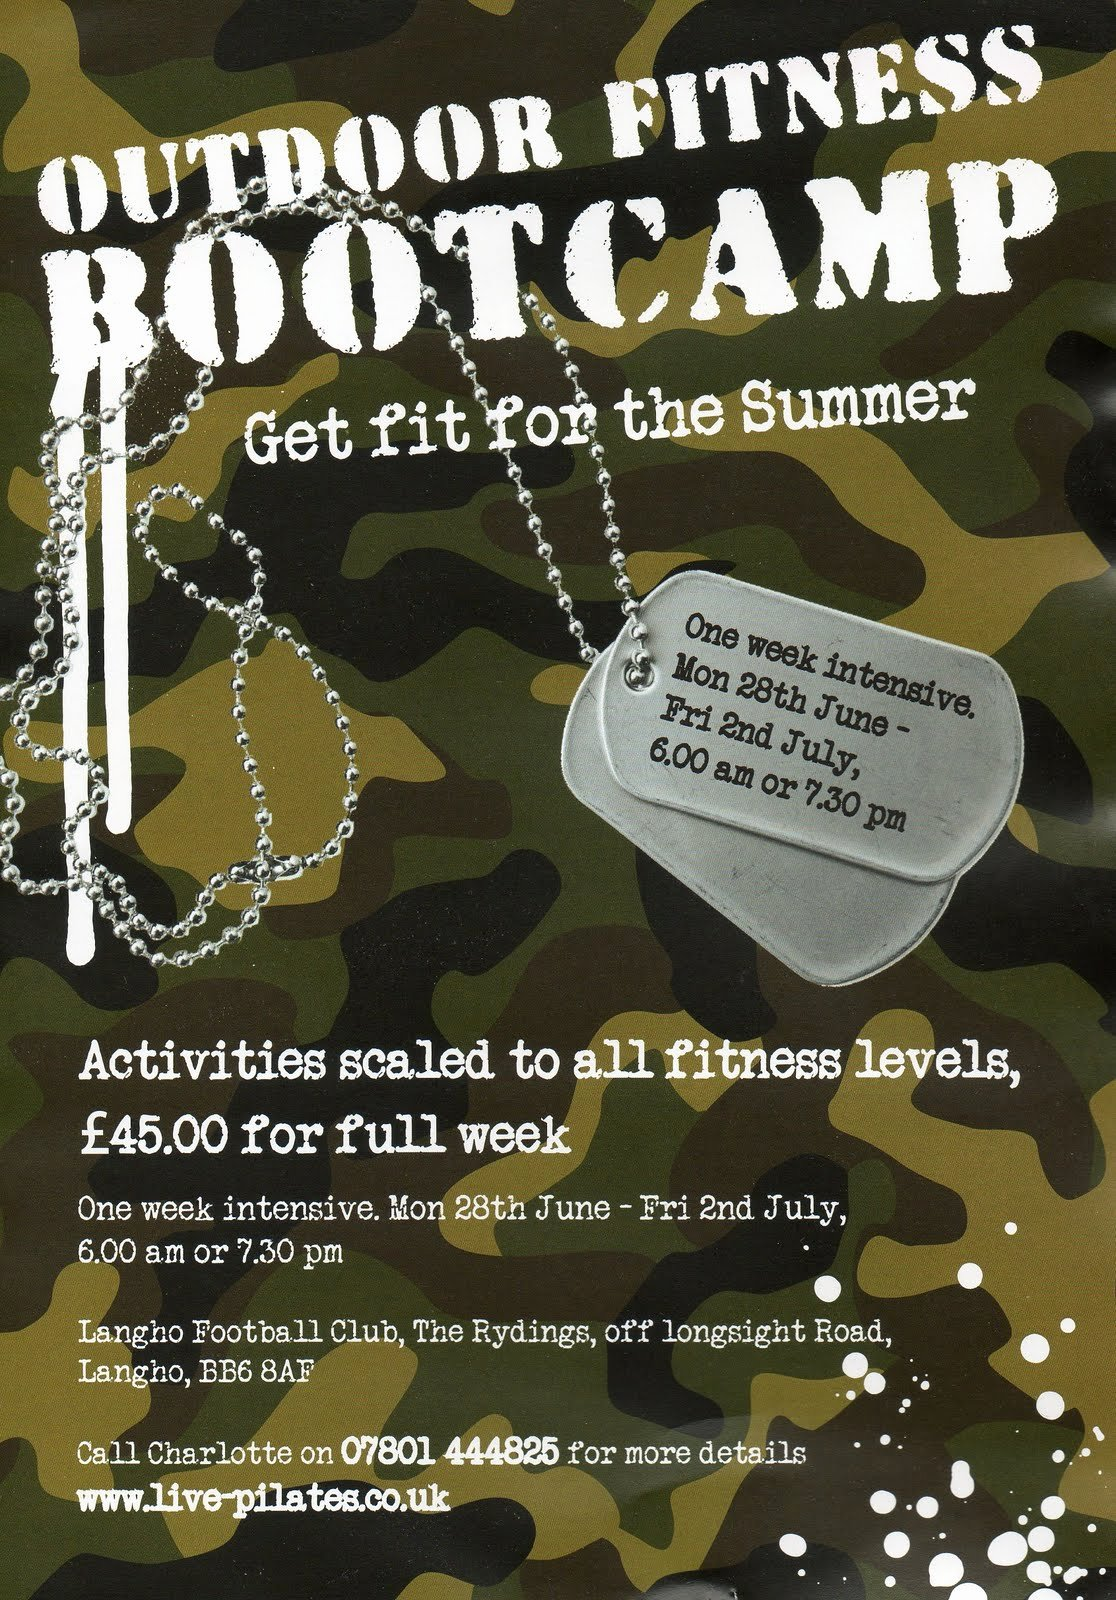 Boot Camp Flyer Template Luxury Boot Camp Flyer Templates Manfoguaqqbyz Blog